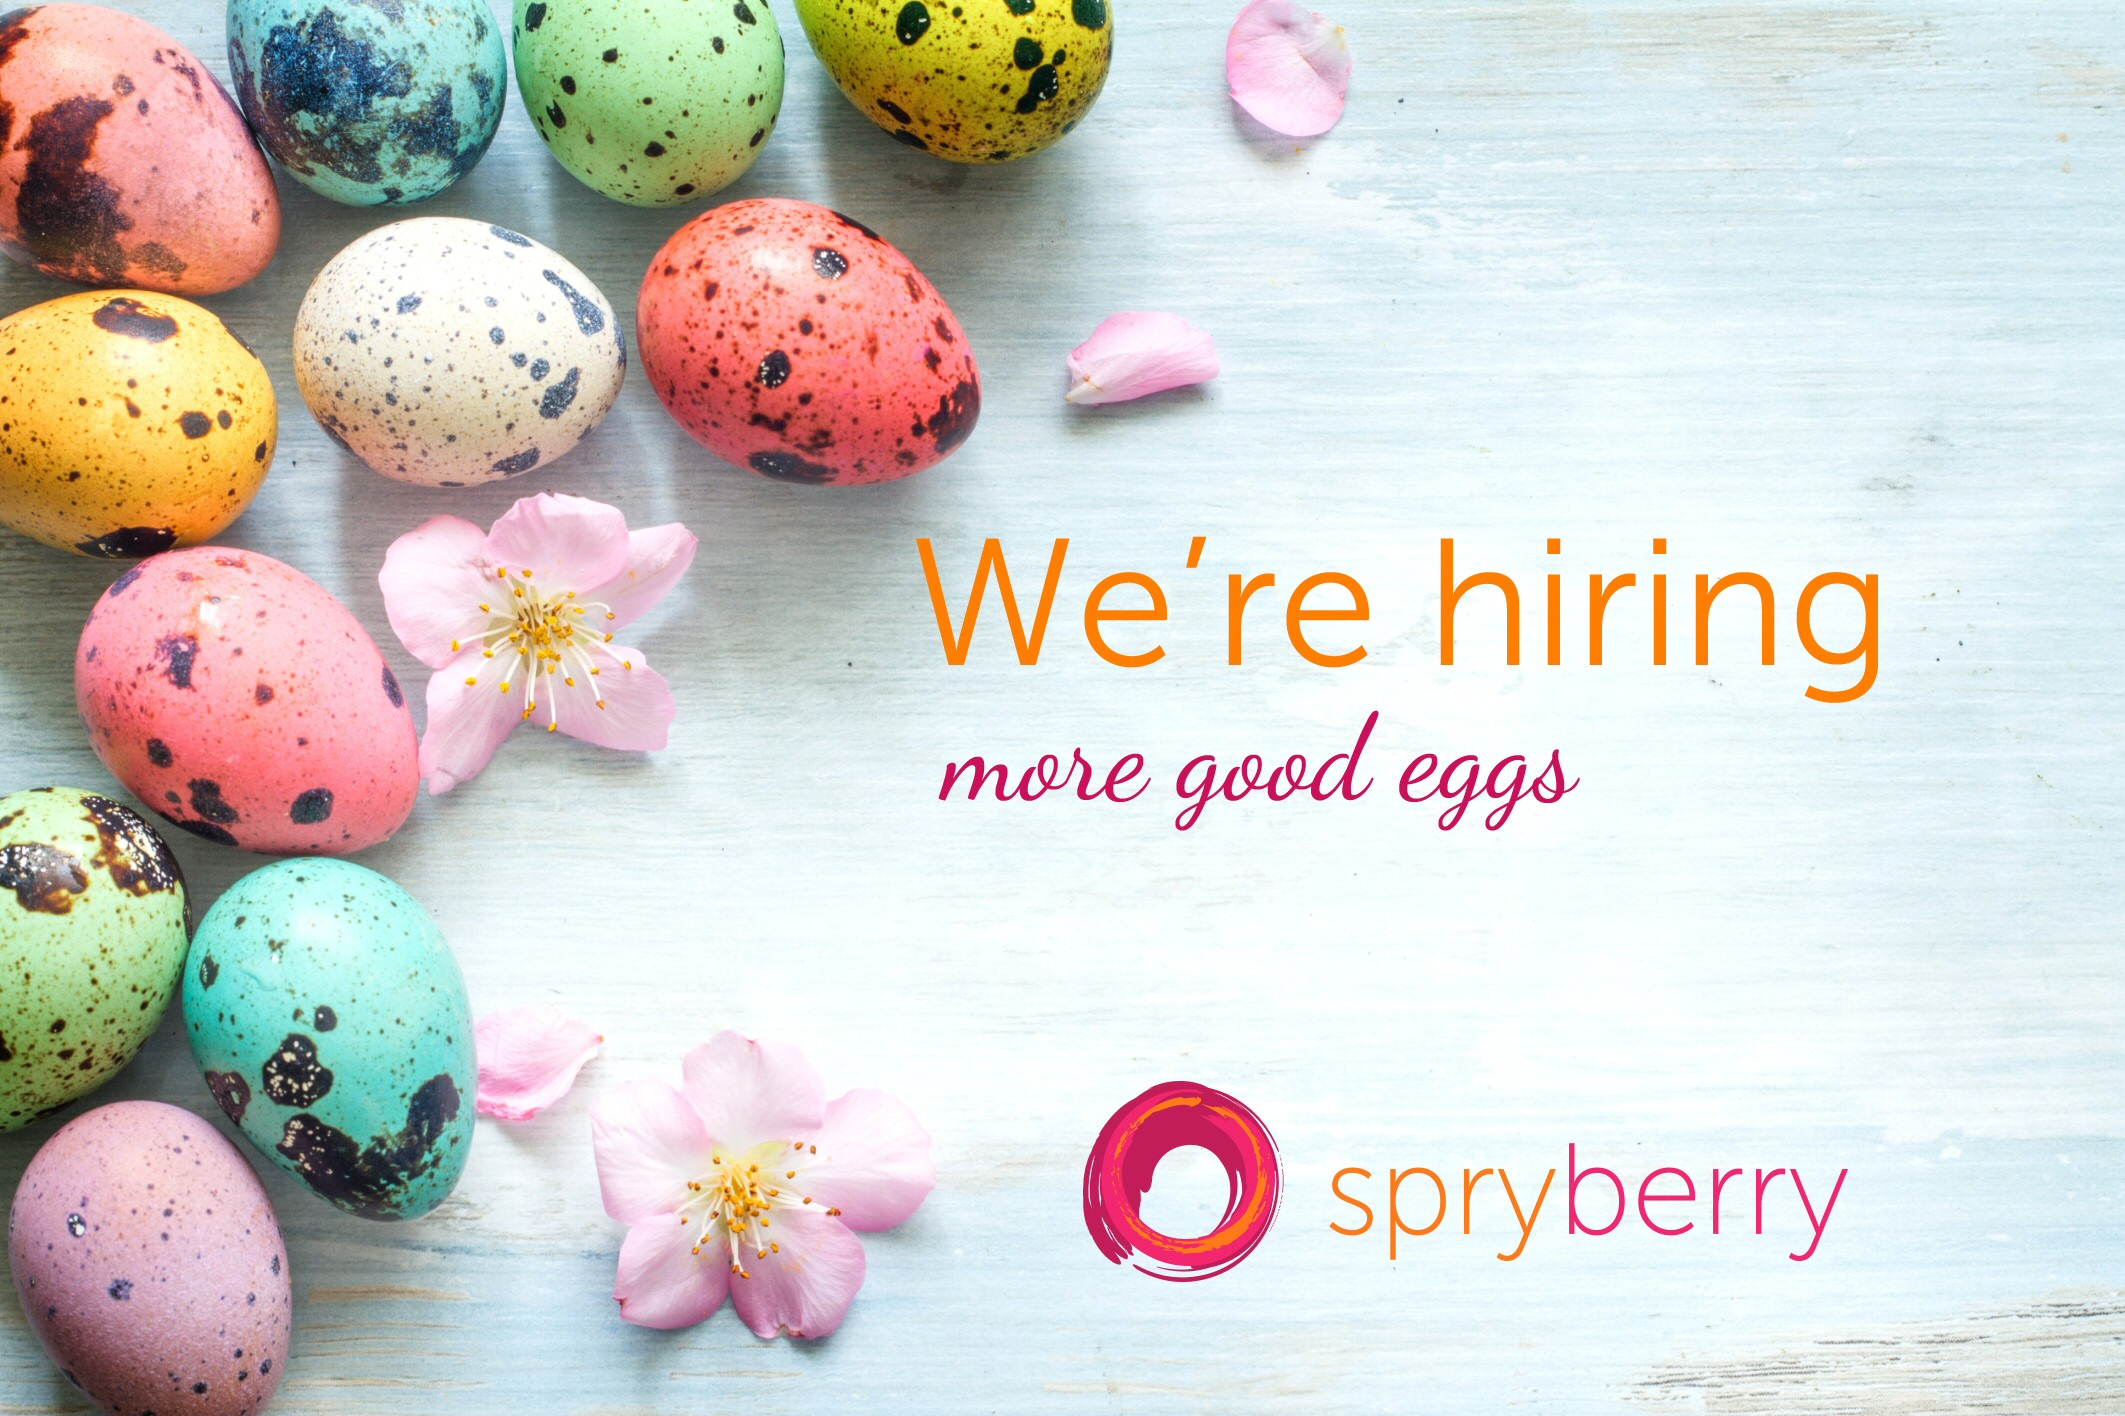 hiring more good eggs